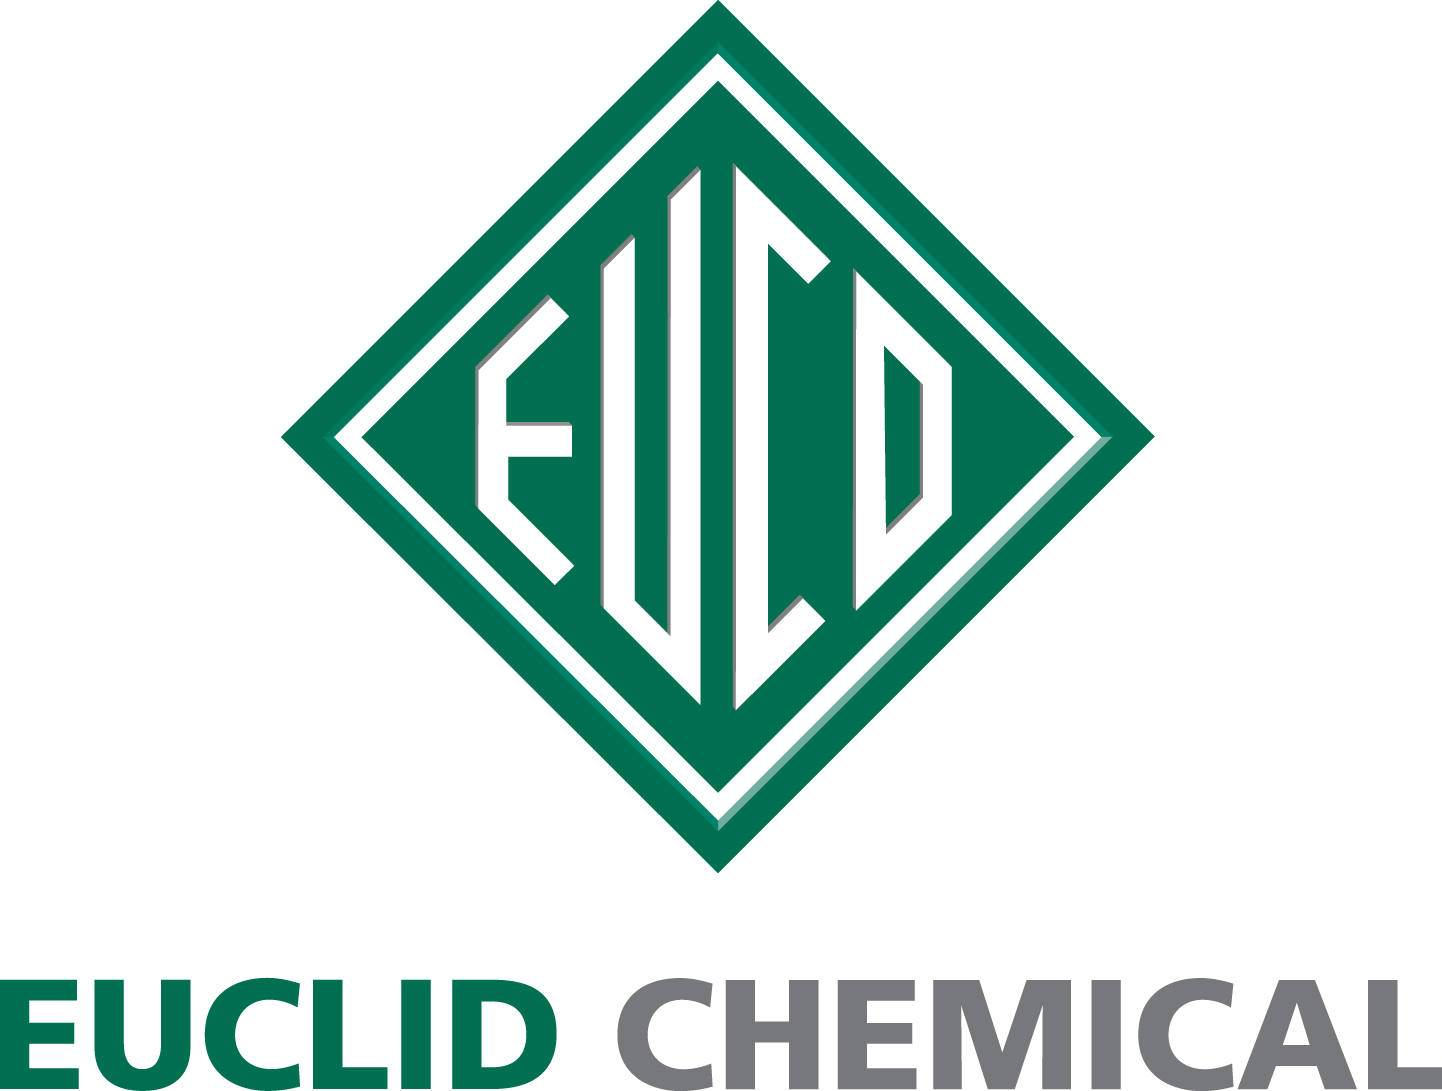 View products in the Euclid Chemical category